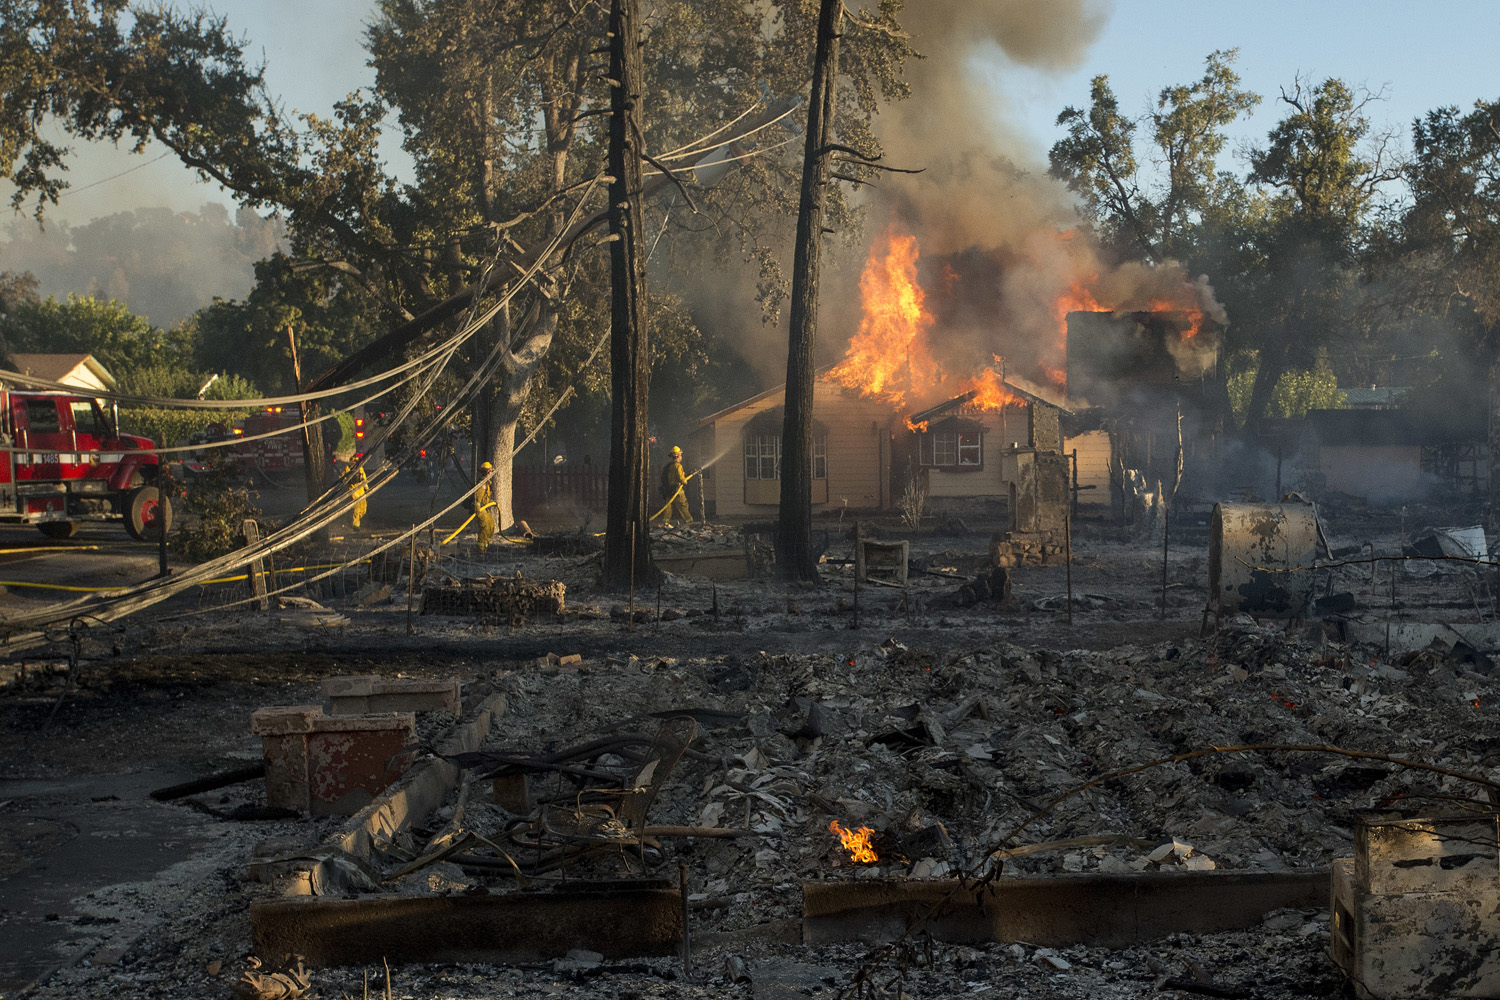 Firefighters douse a burning house in the town of Lower Lake, Calif., on Sunday, Aug. 14, 2016. (Josh Edelson/AP)